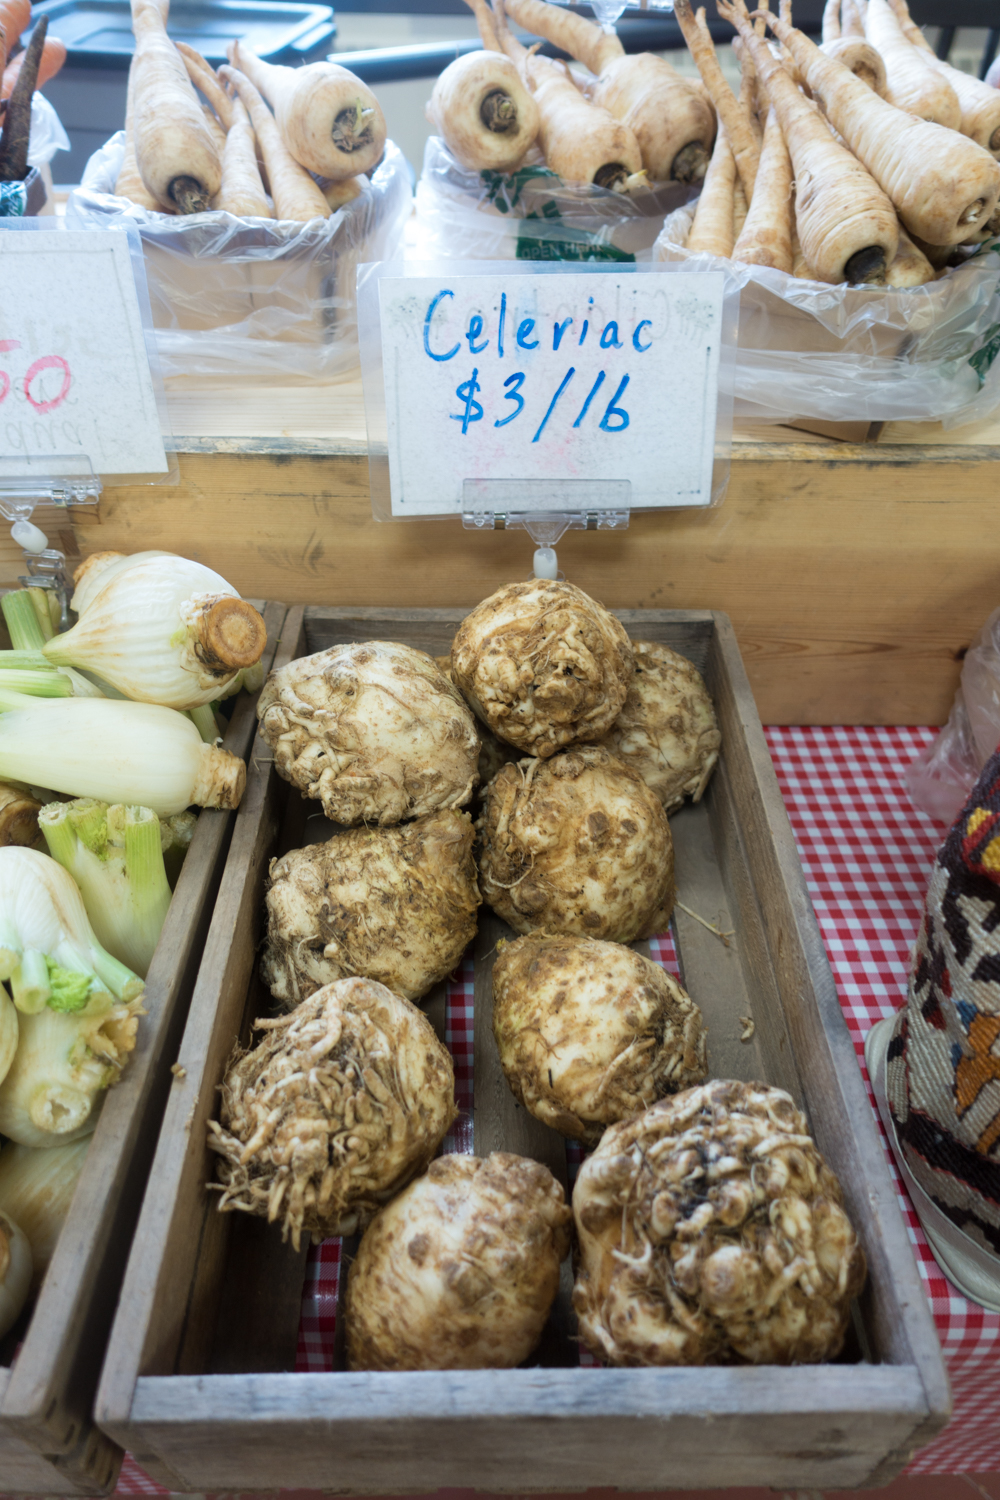 Shop for local produce and products at the indoor farmers market locatedinside theVillage at Grand Traverse Commons. #michigan #traversecity